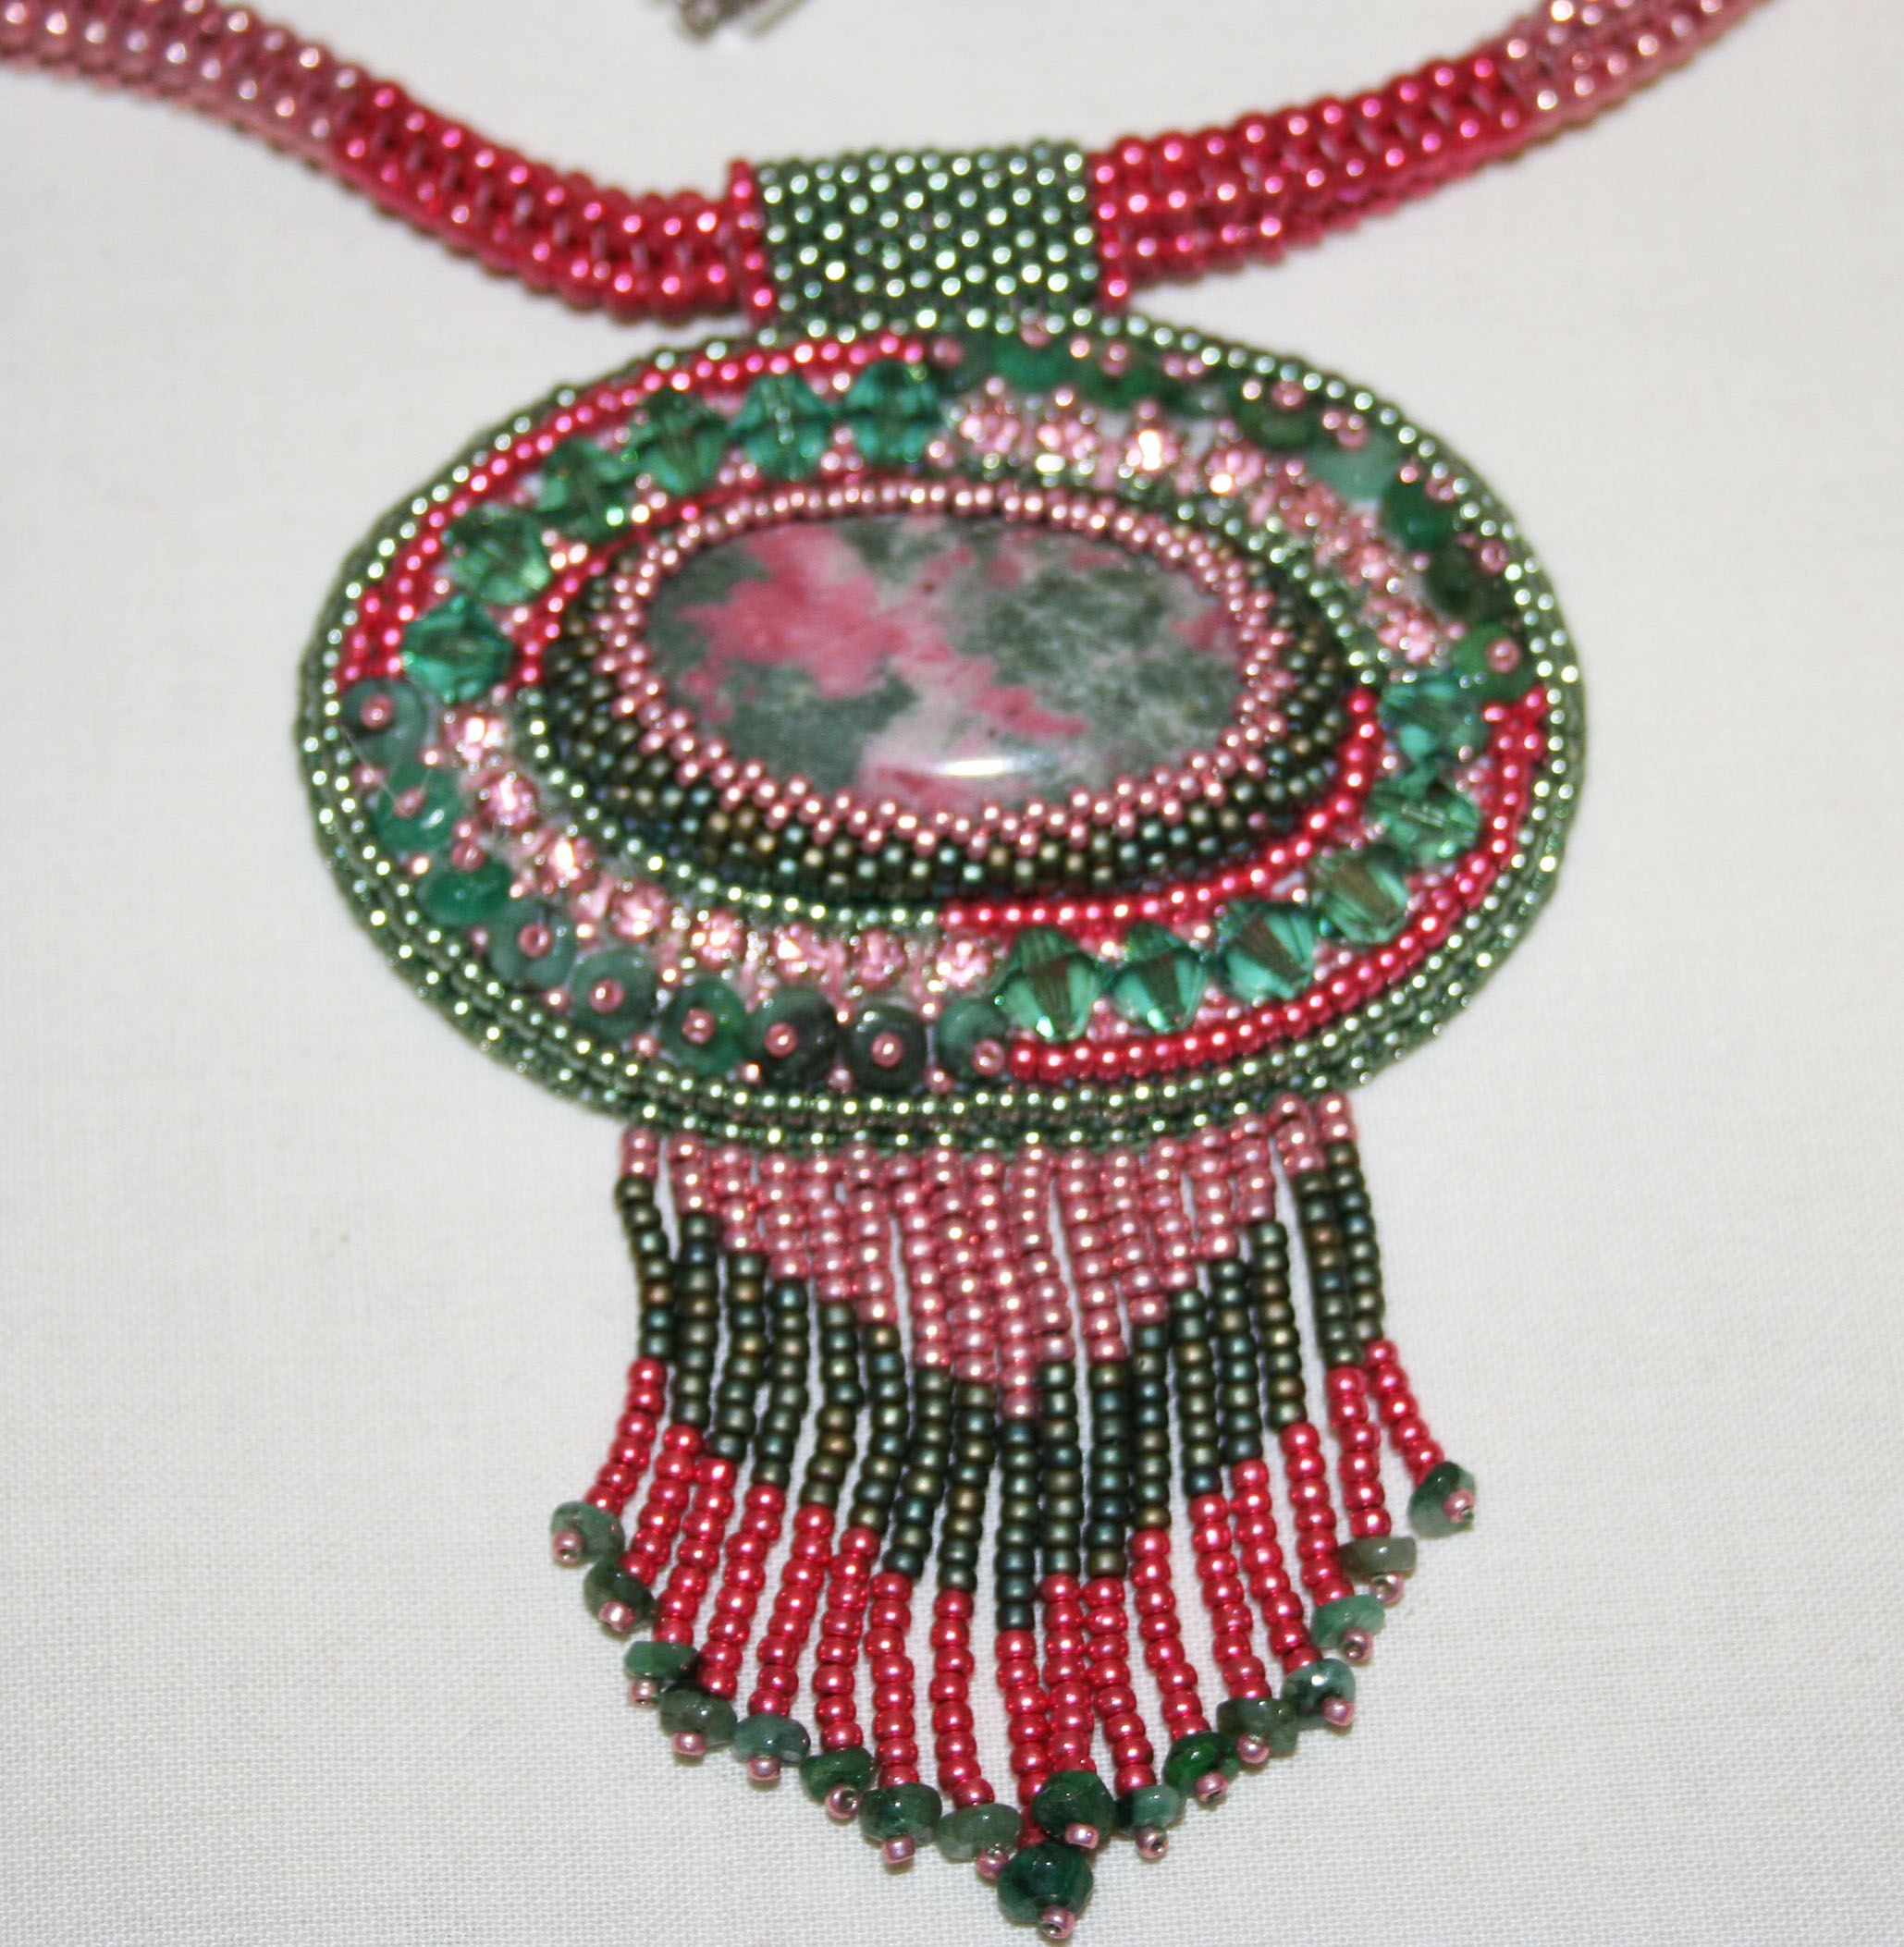 crystal store bohemian with beads swirl highlight glass pink swarovski